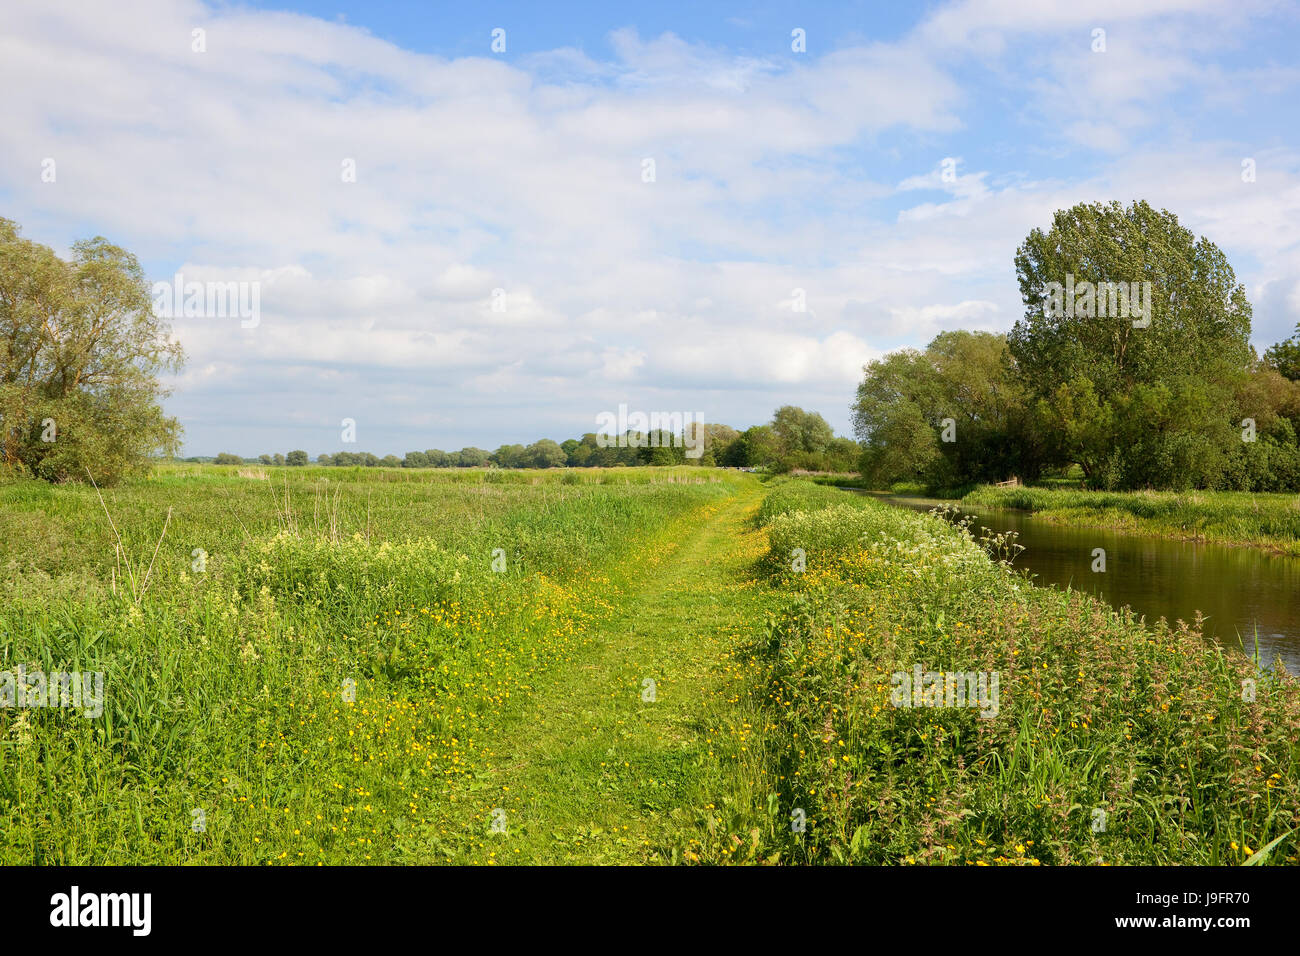 summer meadows with buttercups near a towpath and canal under a blue cloudy sky in yorkshire - Stock Image